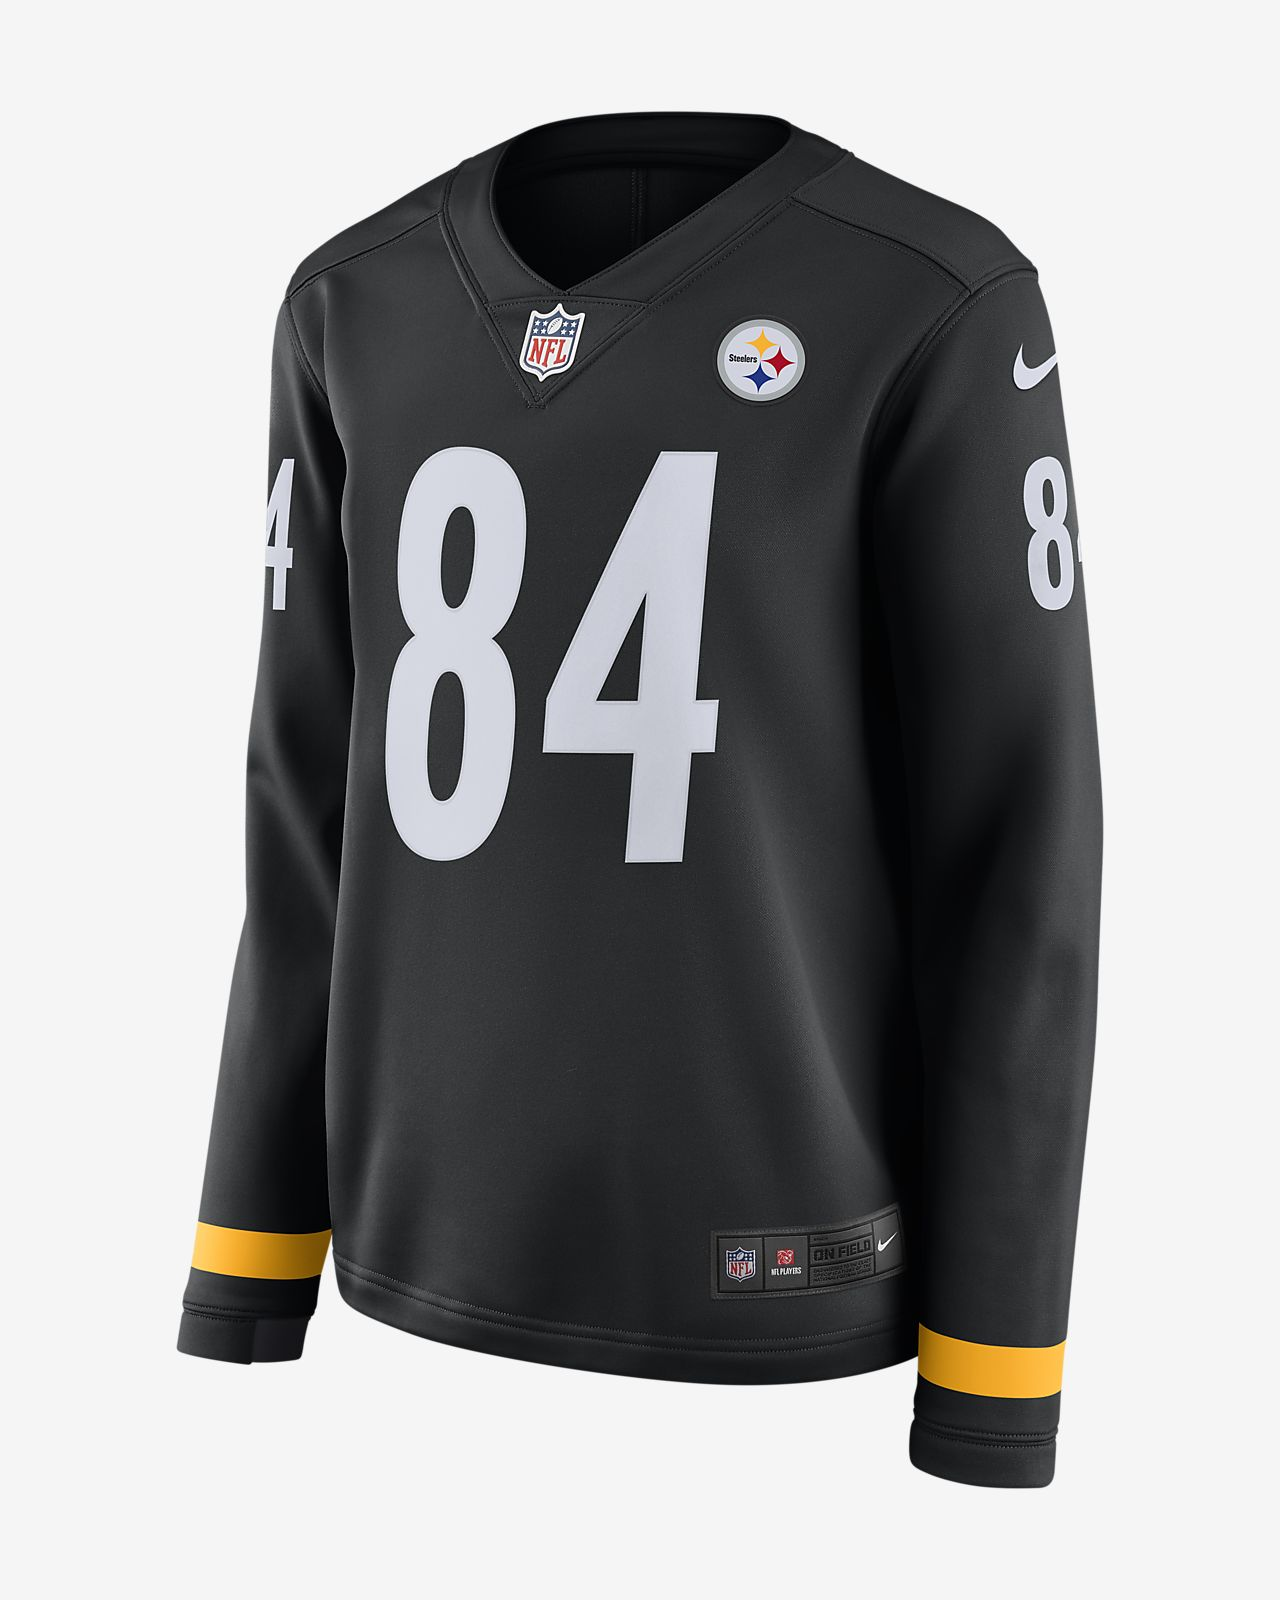 antonio brown jersey women's